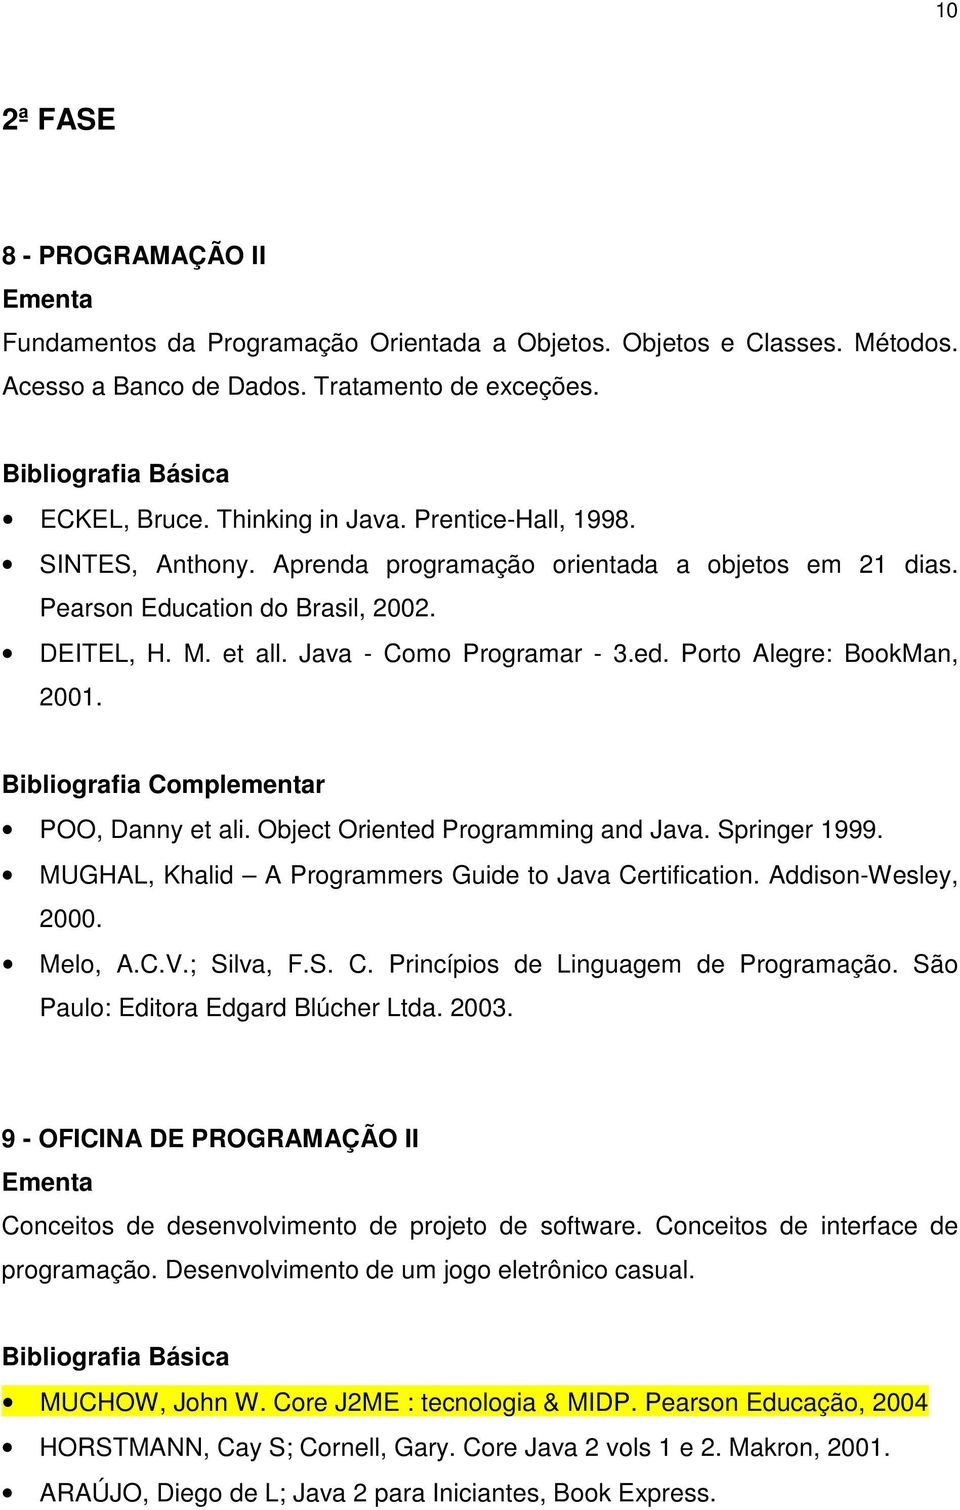 Porto Alegre: BookMan, 2001. POO, Danny et ali. Object Oriented Programming and Java. Springer 1999. MUGHAL, Khalid A Programmers Guide to Java Certification. Addison-Wesley, 2000. Melo, A.C.V.